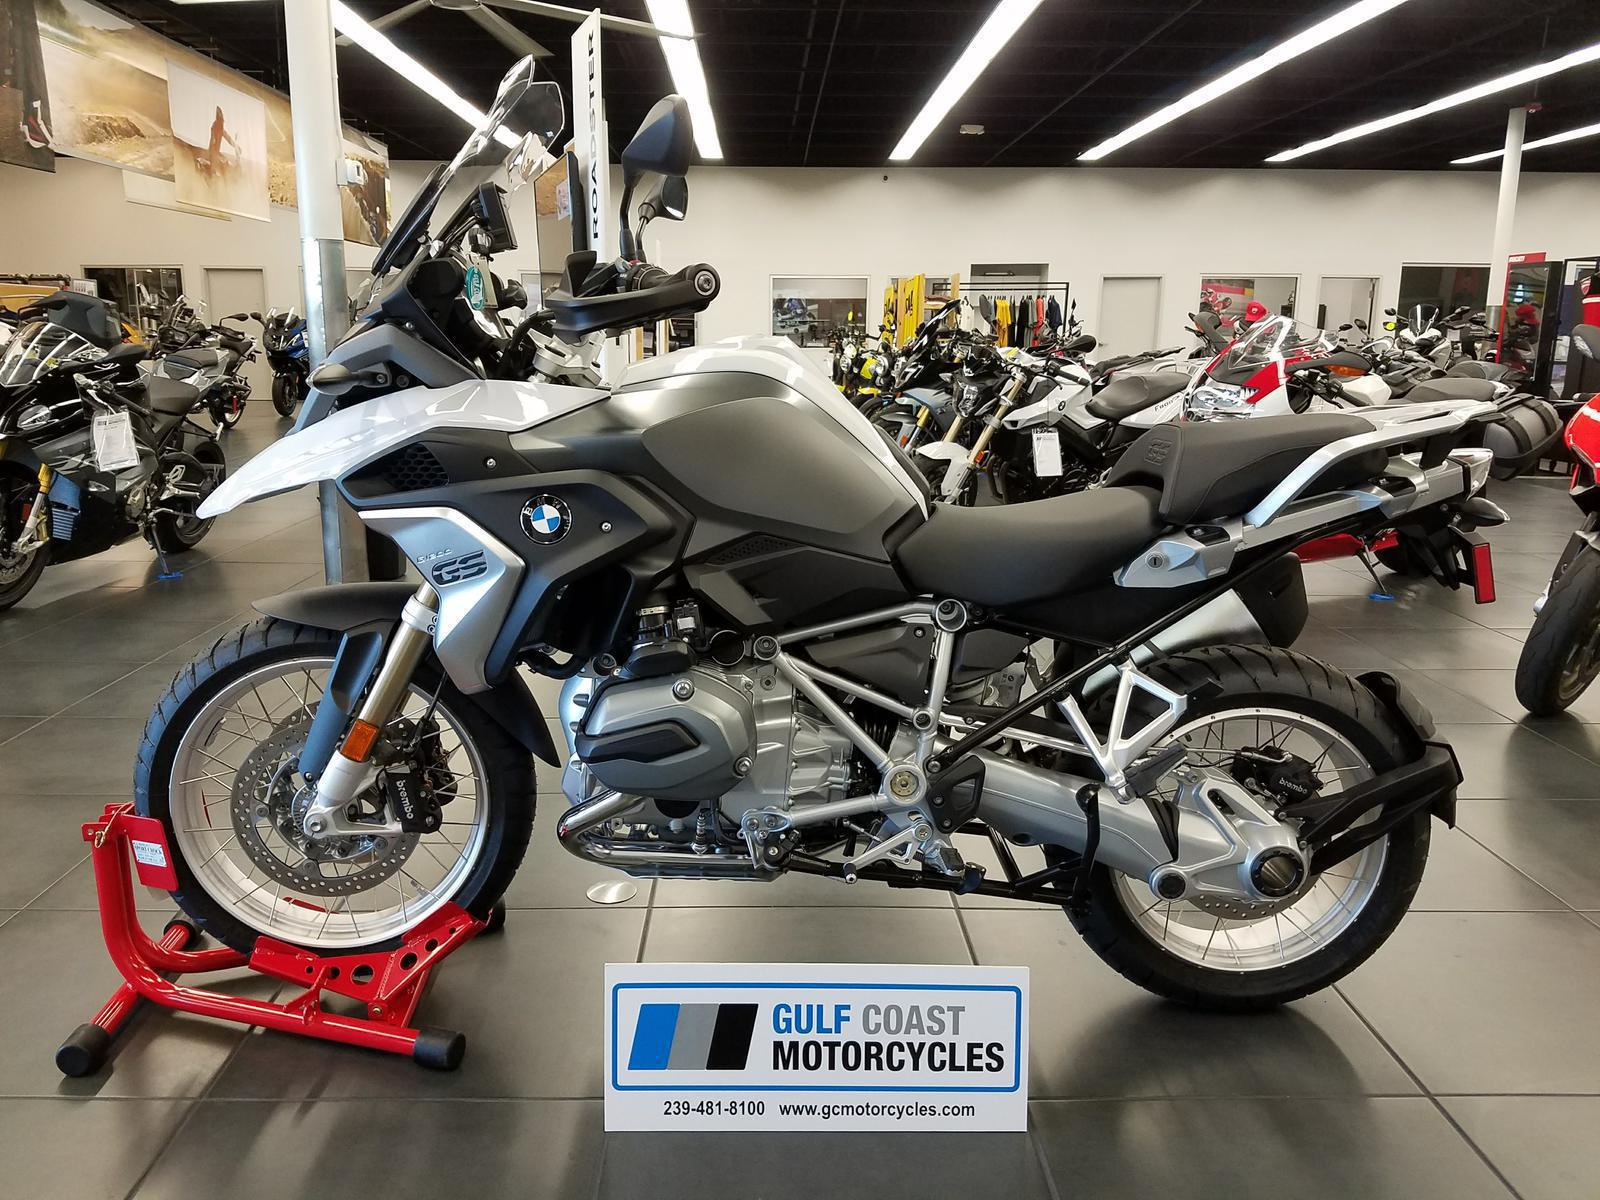 inventory gulf coast motorcycles fort myers, fl (239) 481-8100